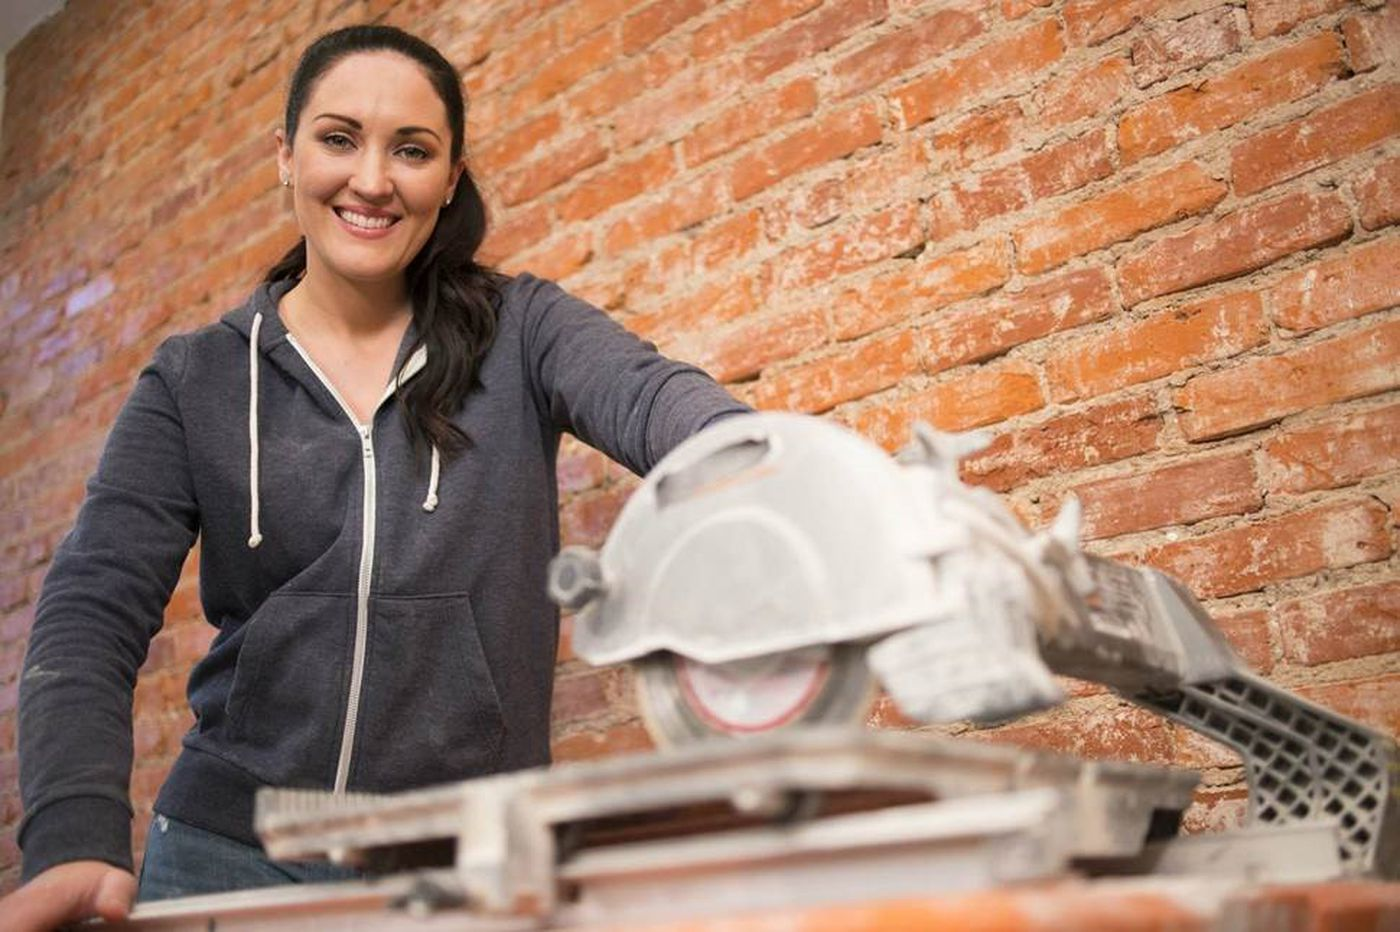 'Philly Revival' renovation show to premiere on DIY later this month